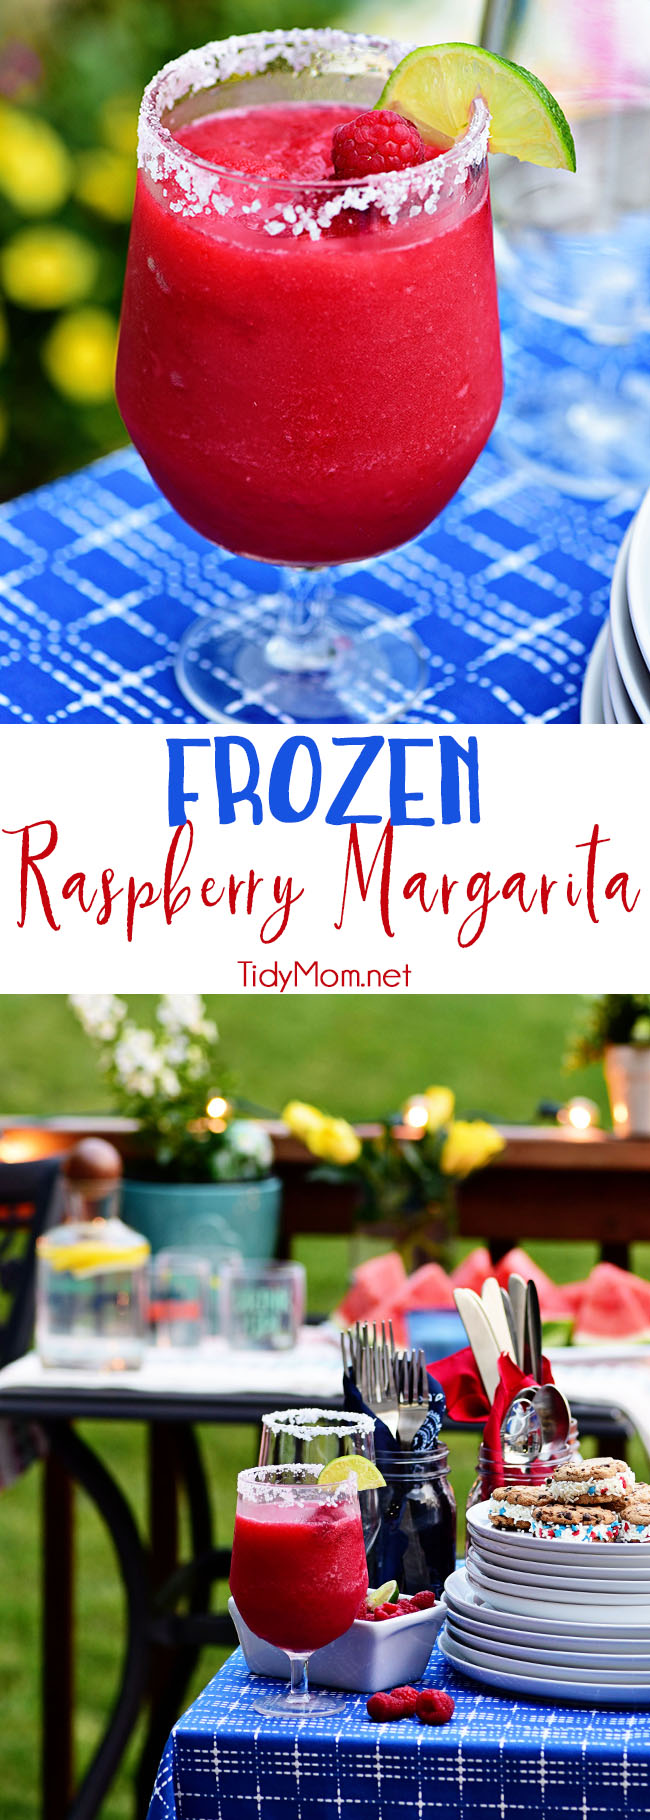 Frozen Raspberry Margarita is the perfect summer cocktail. Raspberry sorbet puts a refreshing twist on the traditional margarita, for a cool party sip!  Get the full recipe at TidyMom.net #cocktails #margarita #raspberry #cocktailrecipe